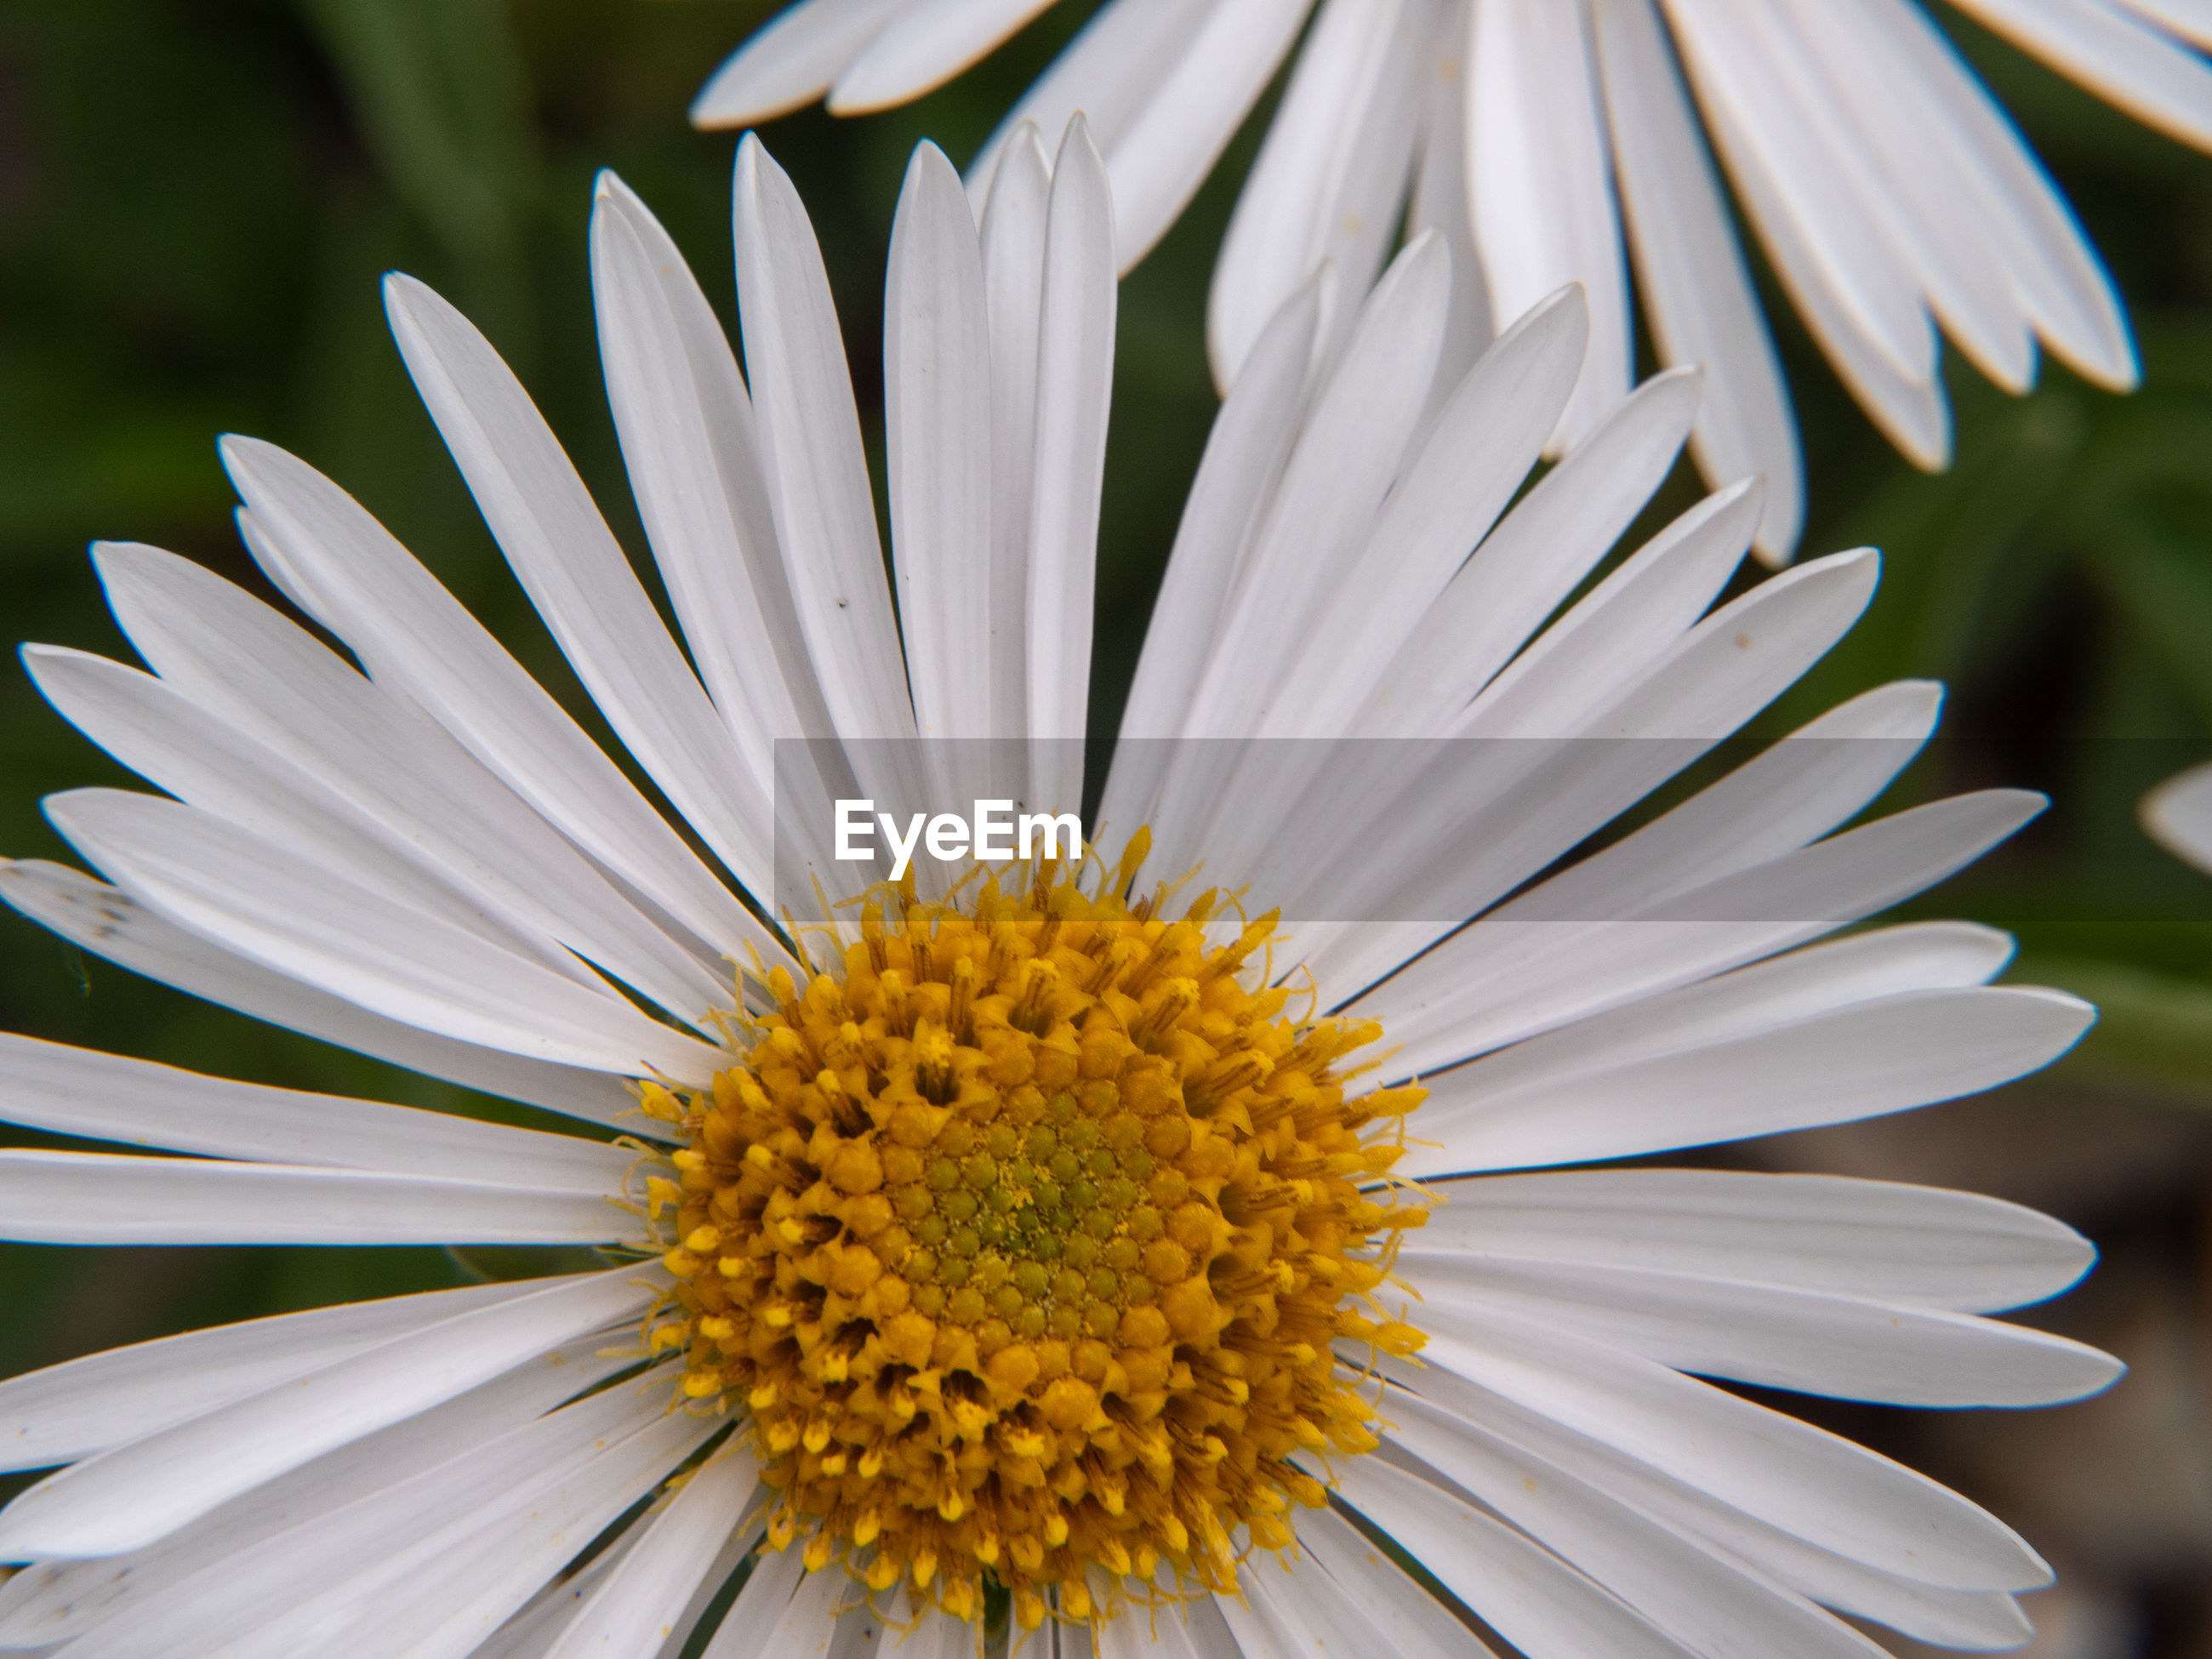 CLOSE-UP OF WHITE DAISY WITH YELLOW FLOWER